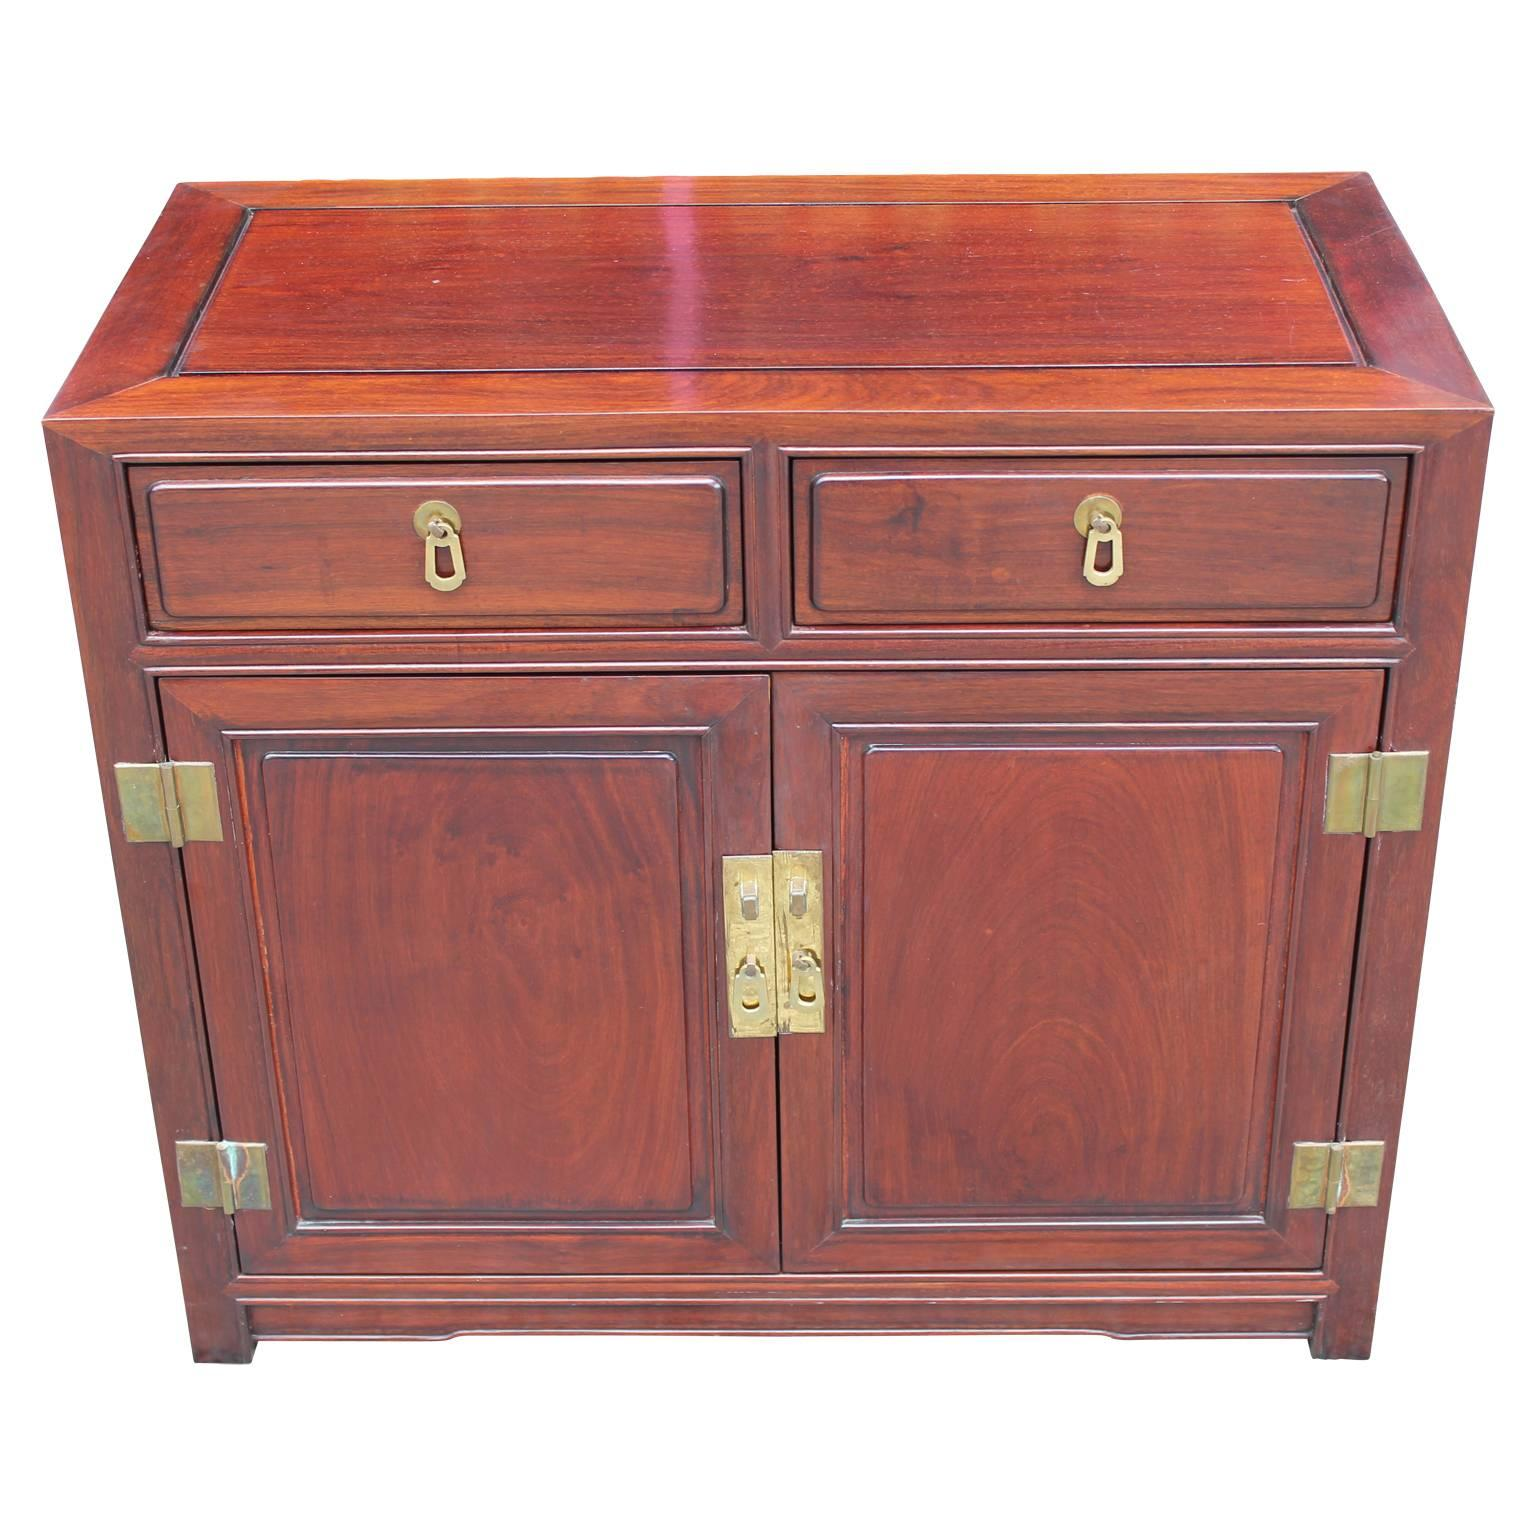 Good Modern Small Mahogany Cabinet / Chest With Brass Hardware Henredon Style 2